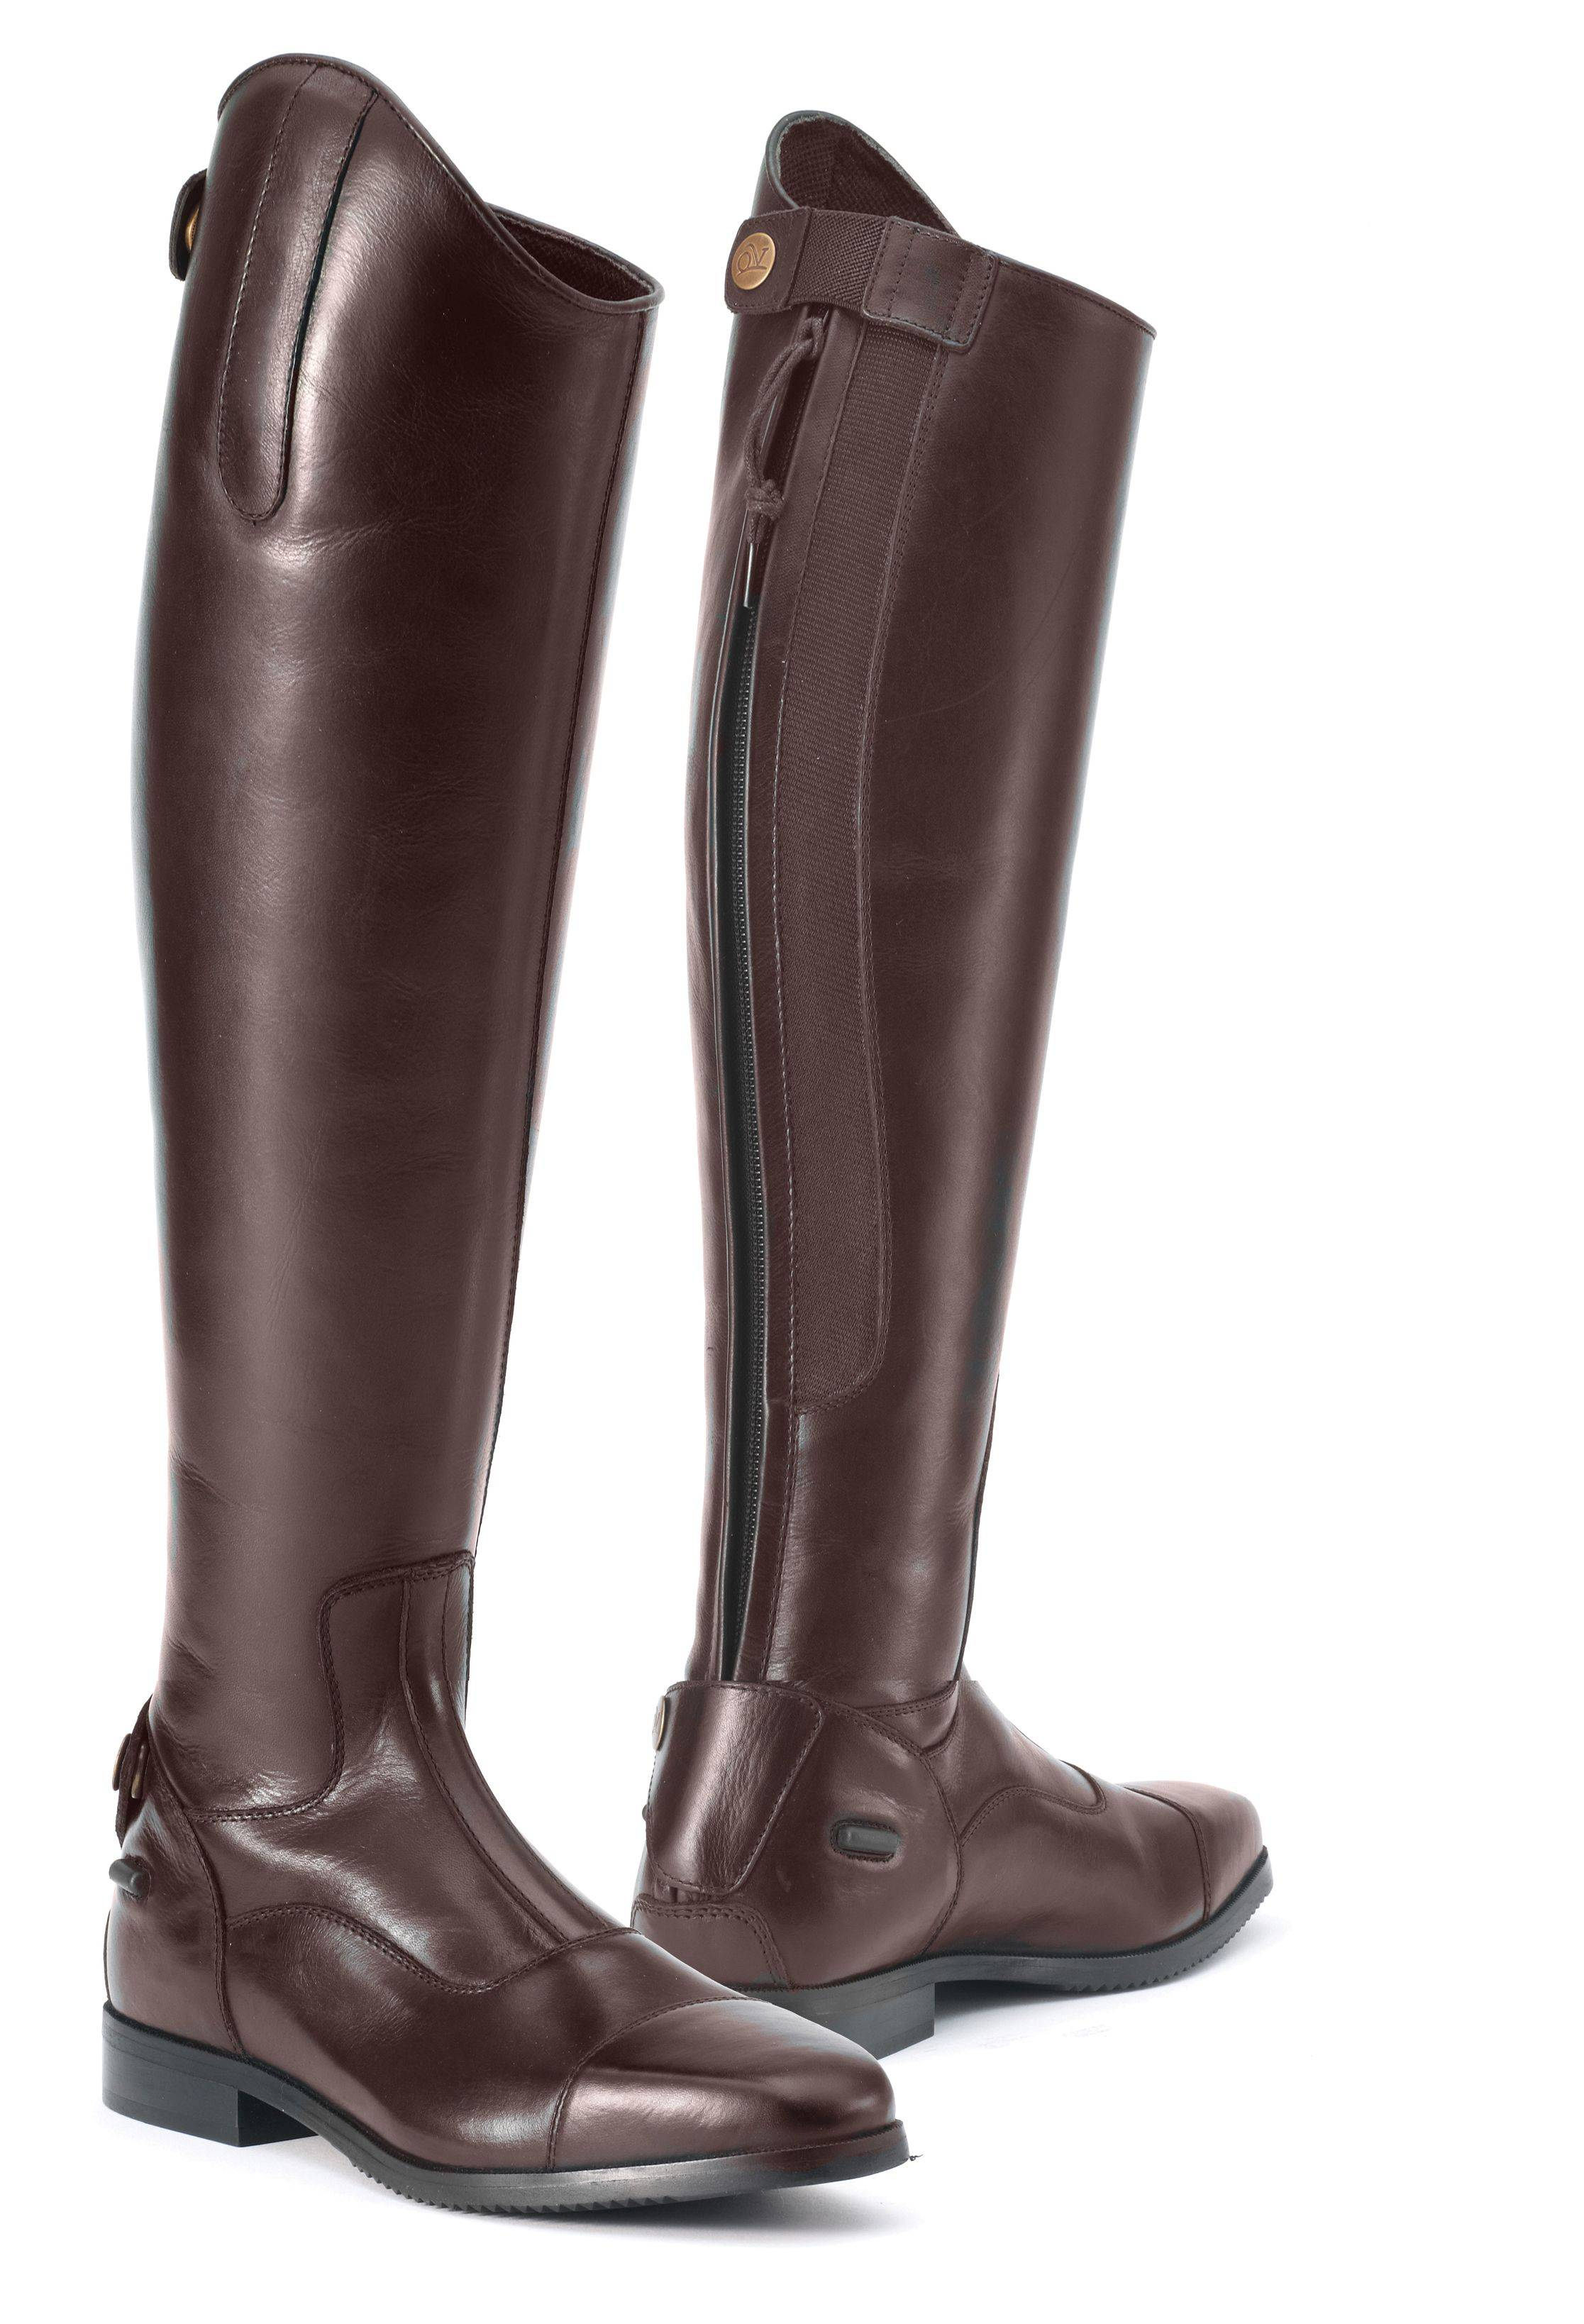 Ovation Ladies Olympia Tall Dress Boots - Brown